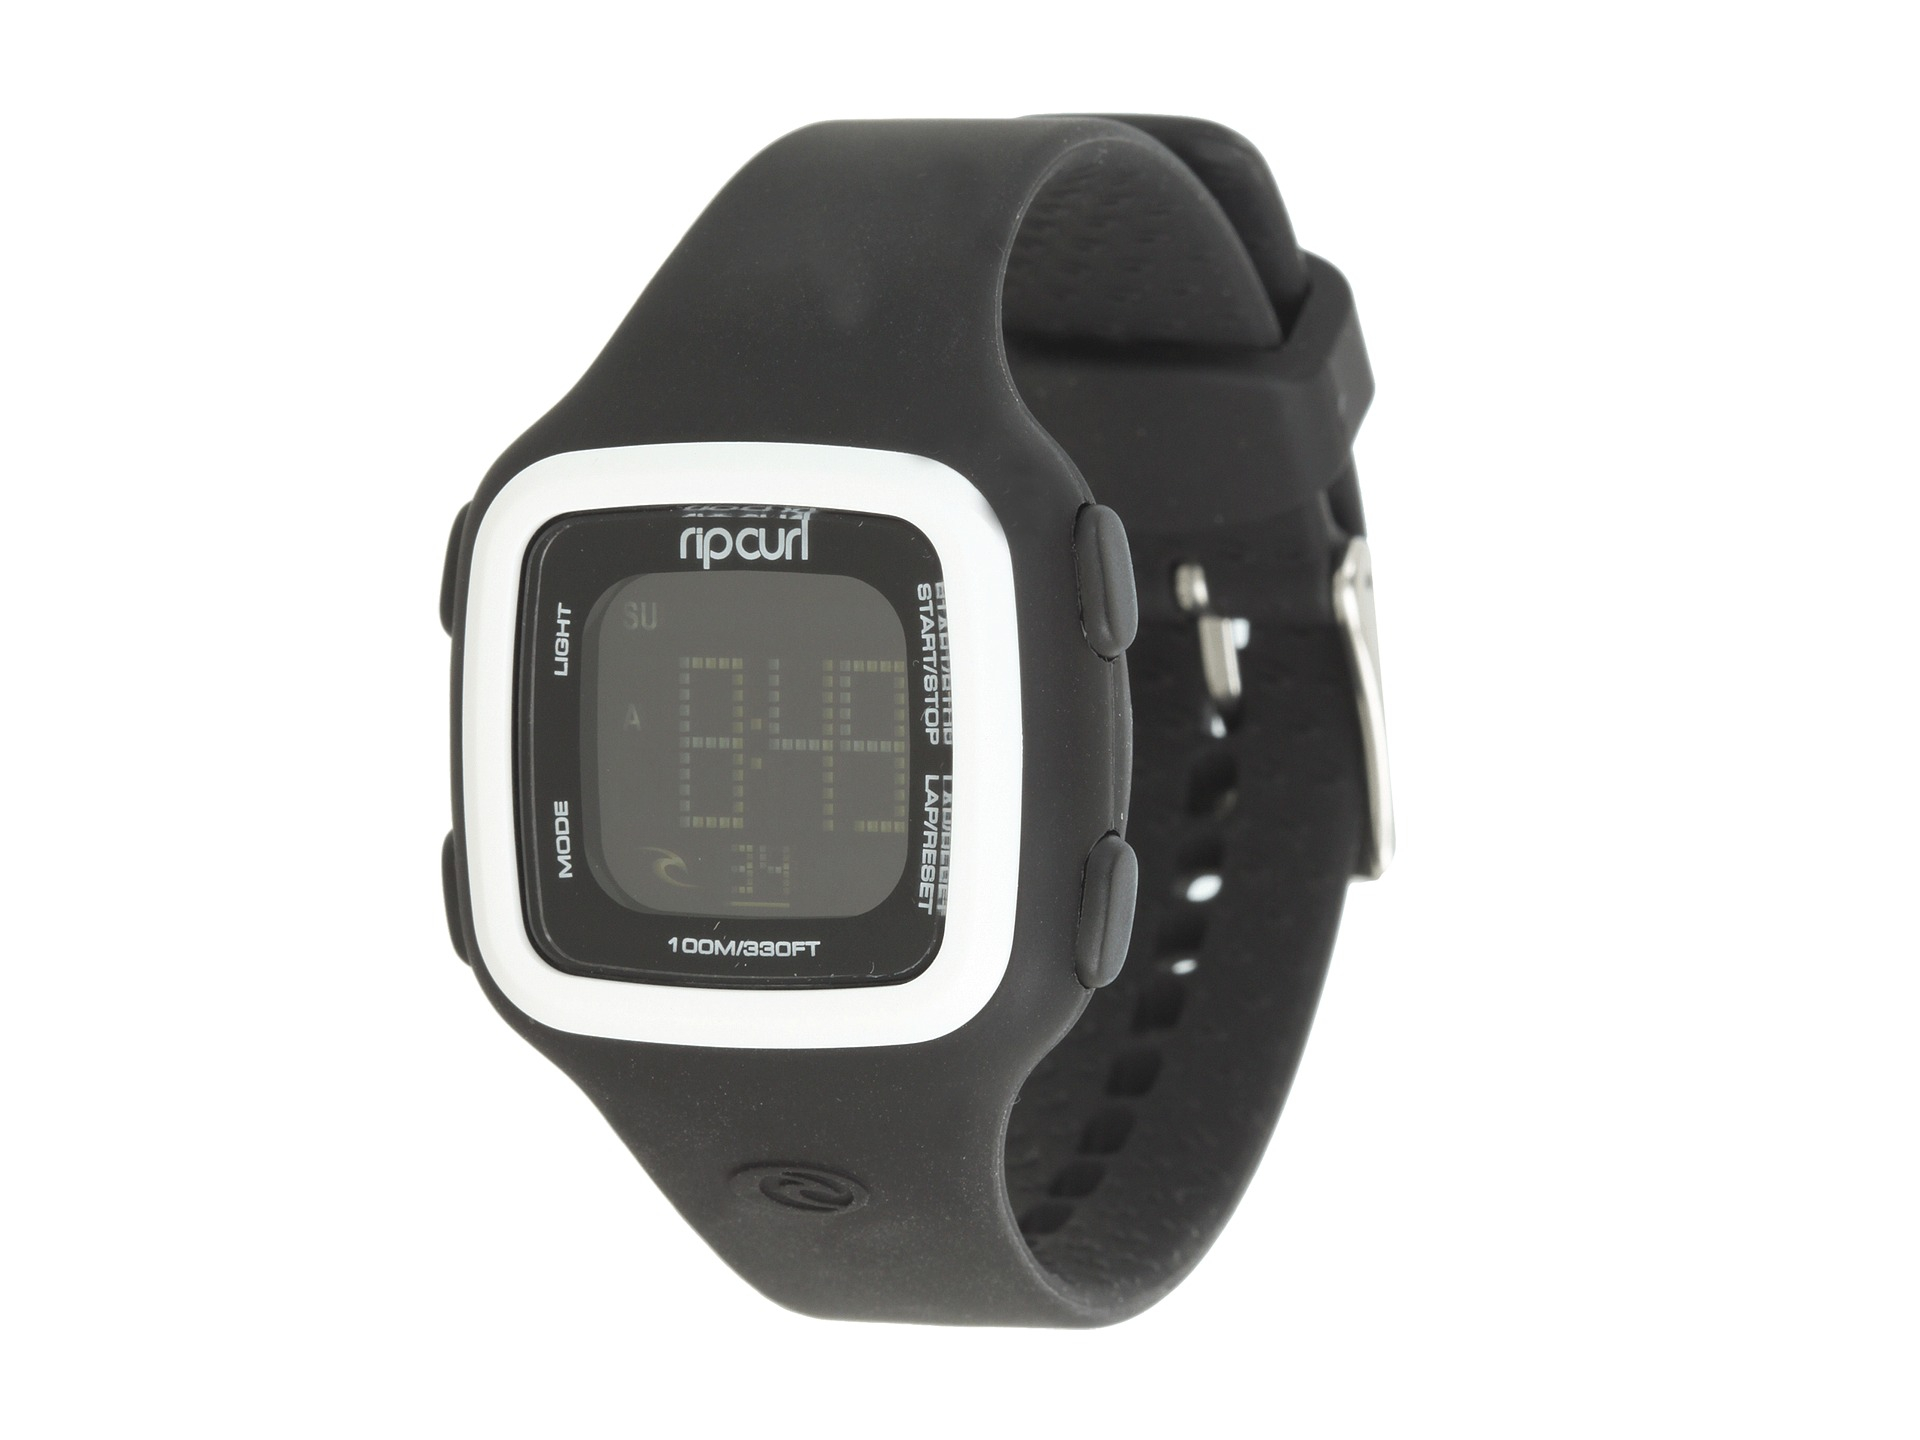 rip curl candy watch instructions